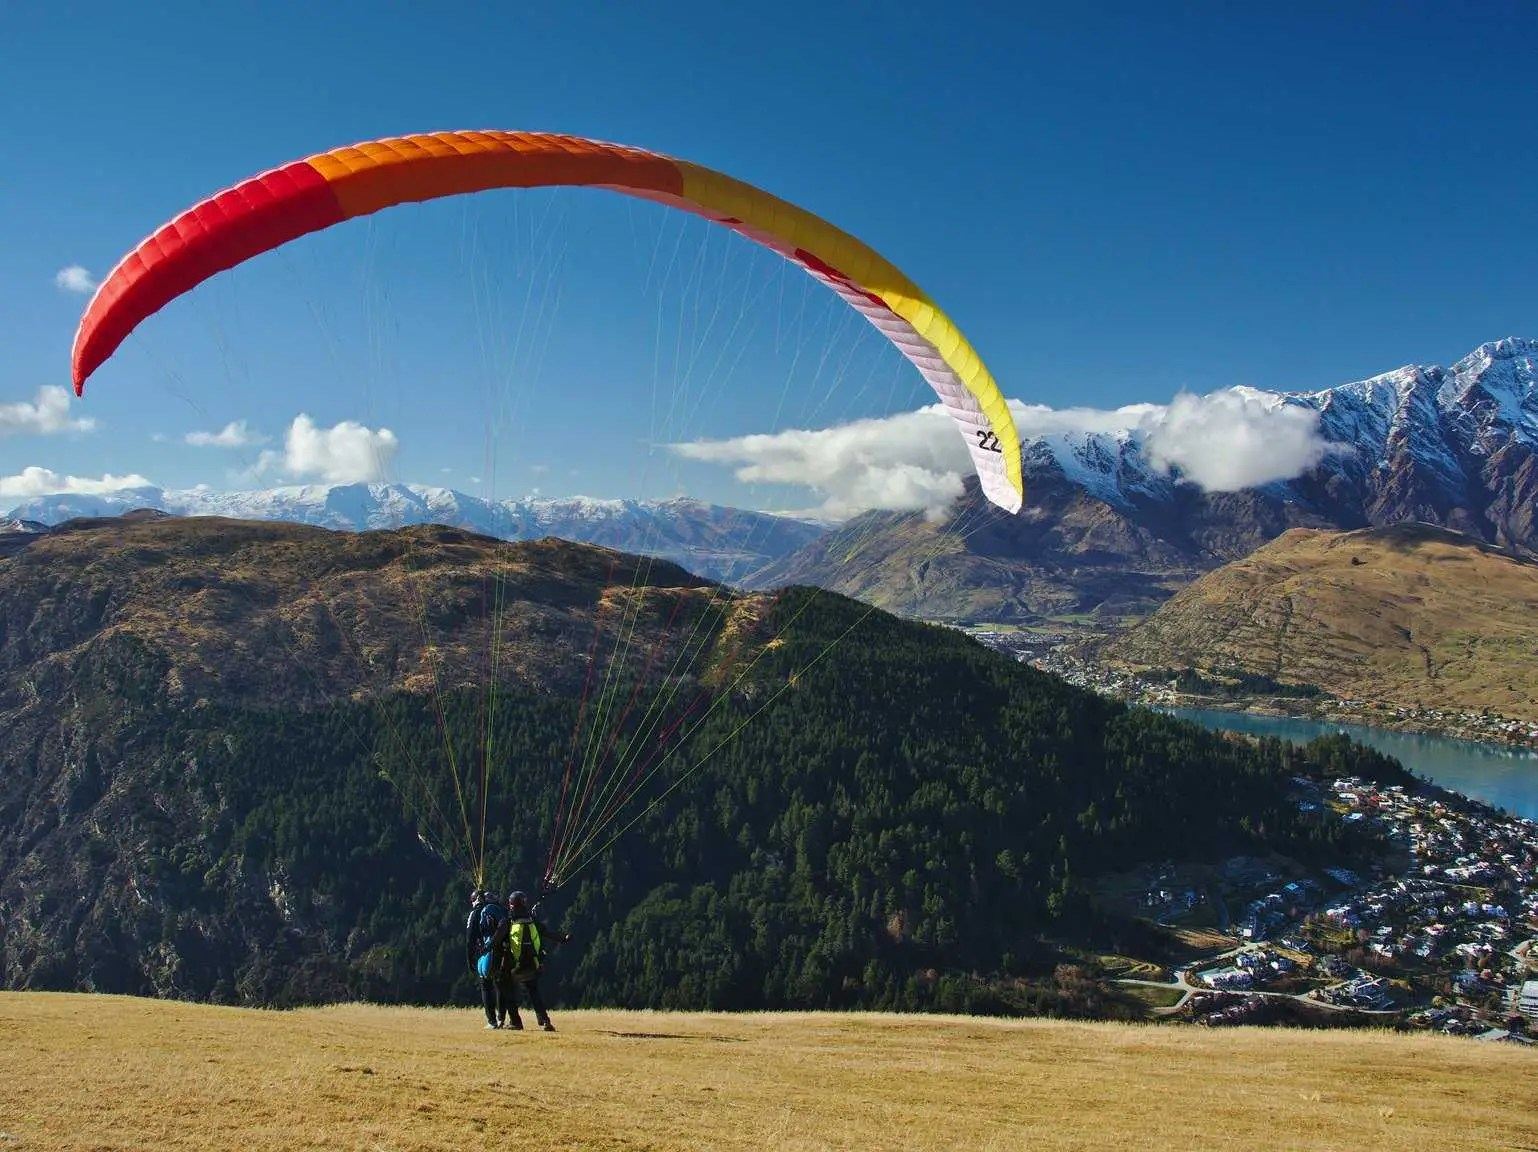 Paraglide over the mountains and water surrounding the picturesque city of Queenstown, New Zealand.